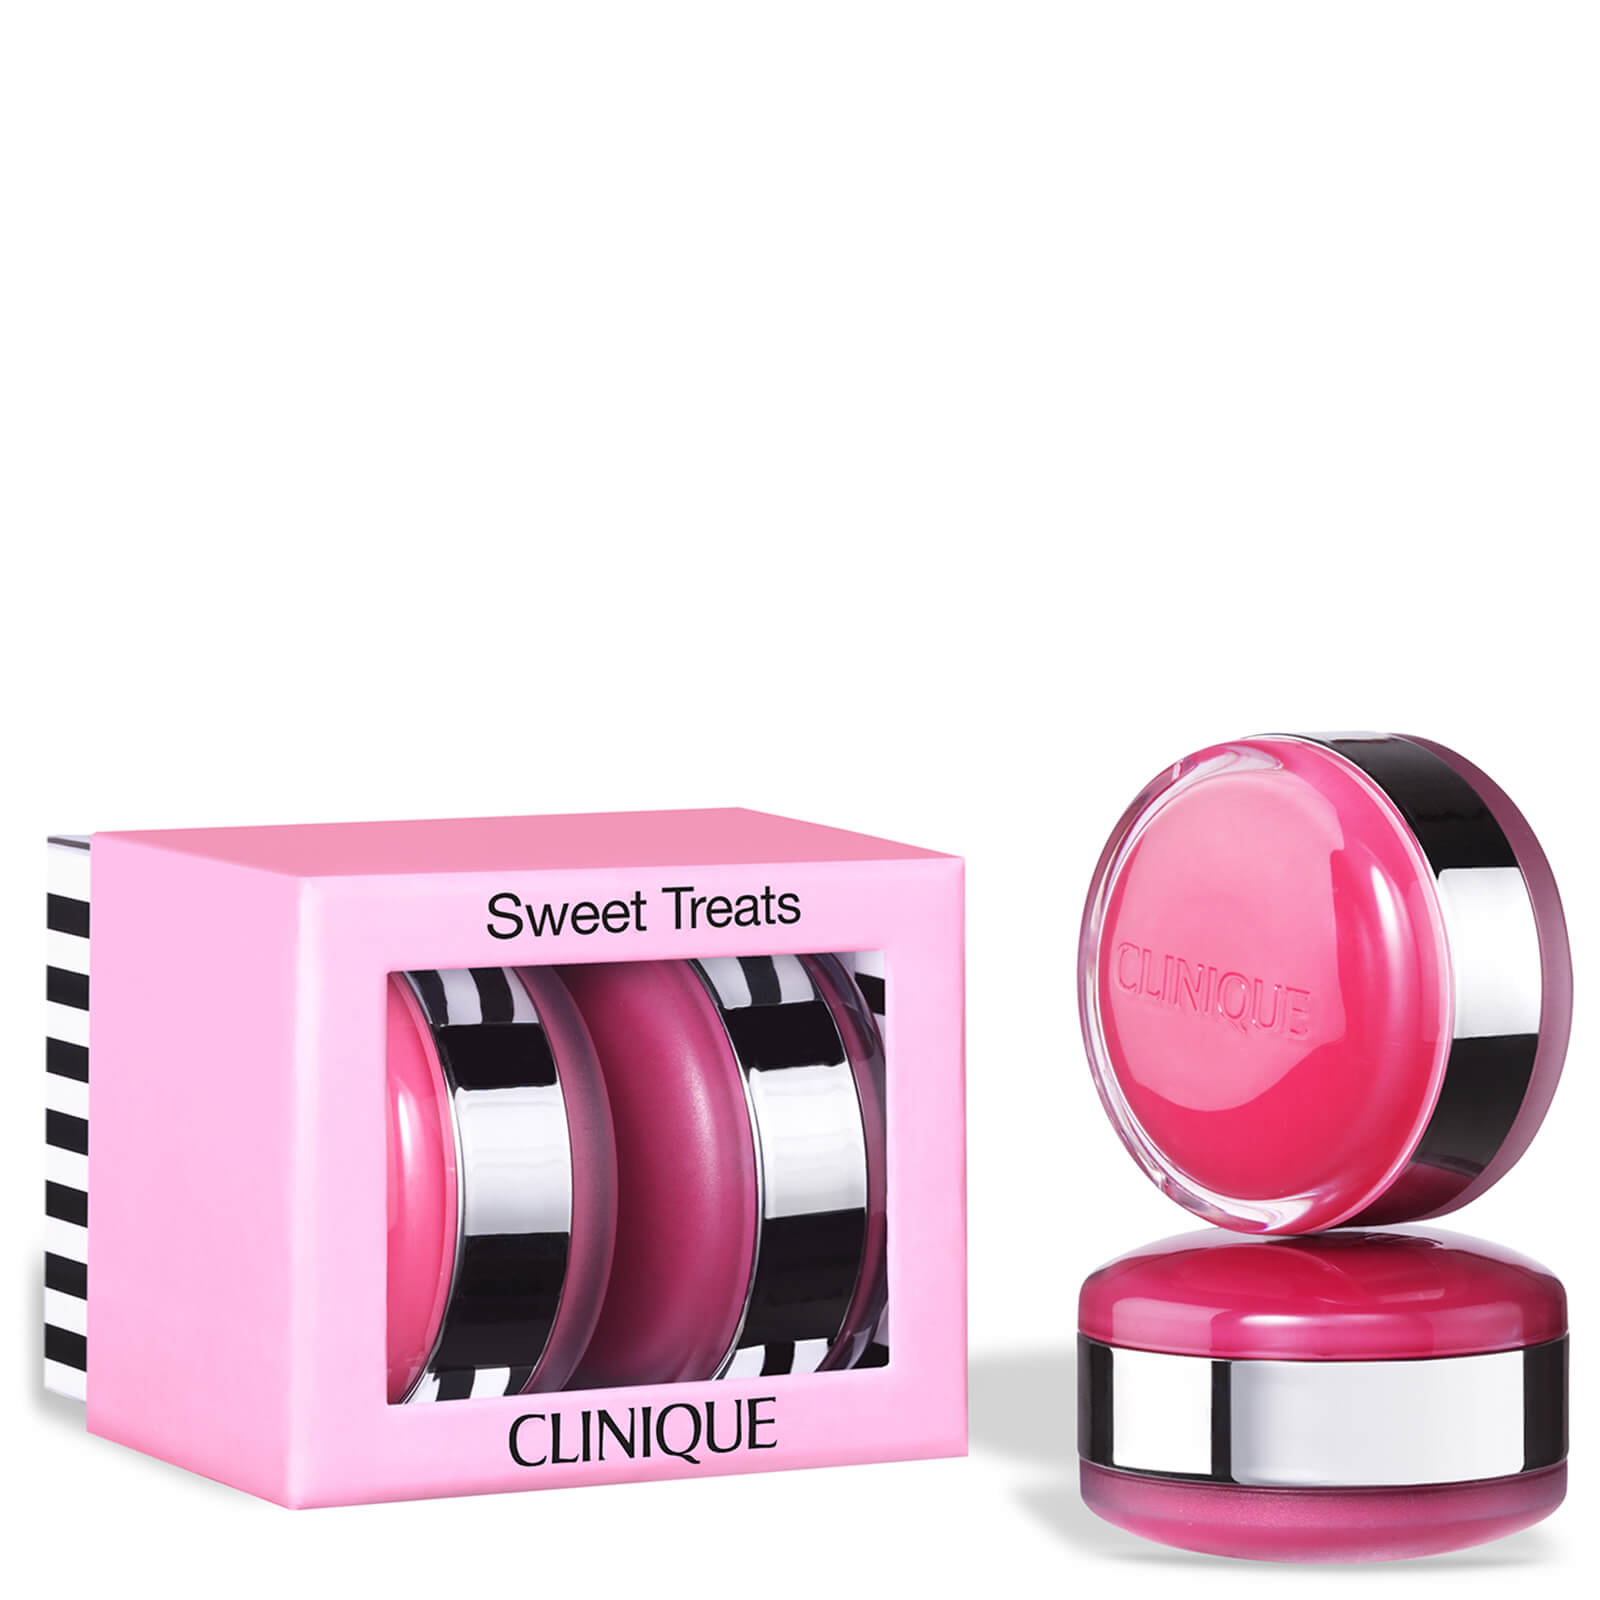 Clinique Sweet Treats Lip Balm Gift Set. Description  sc 1 st  Lookfantastic & Clinique Sweet Treats Lip Balm Gift Set | Free Shipping | Lookfantastic